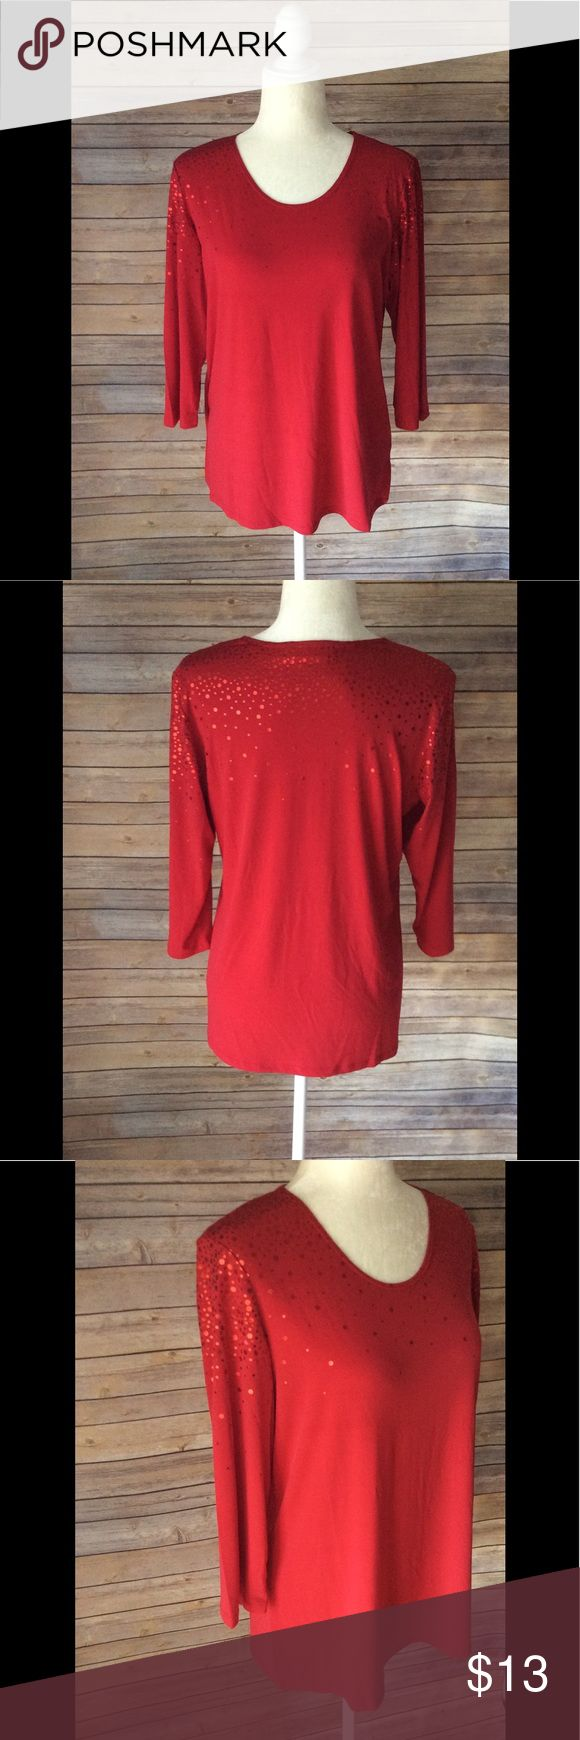 Susan Graver Red Shiny Polka Dot Size Small Susan Graver Red Shiny Polka Dot Size Small. Excellent Preowned Condition. Ships from smoke free and pet free home. Susan Graver Tops Blouses